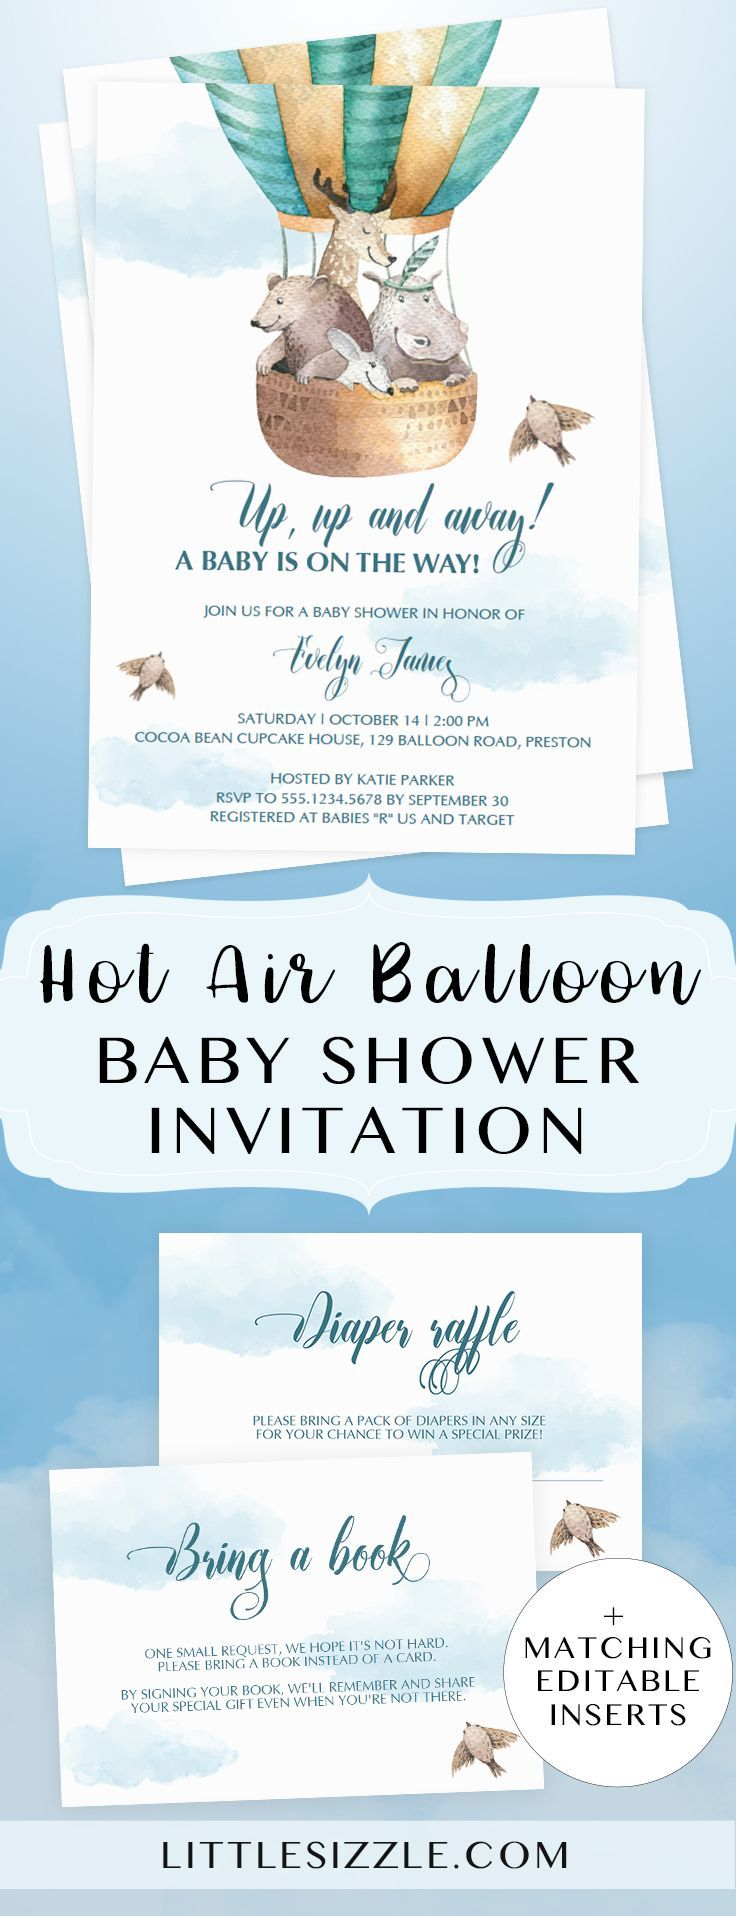 Up, Up and Away Baby Shower Invitation Template | Baby shower ...